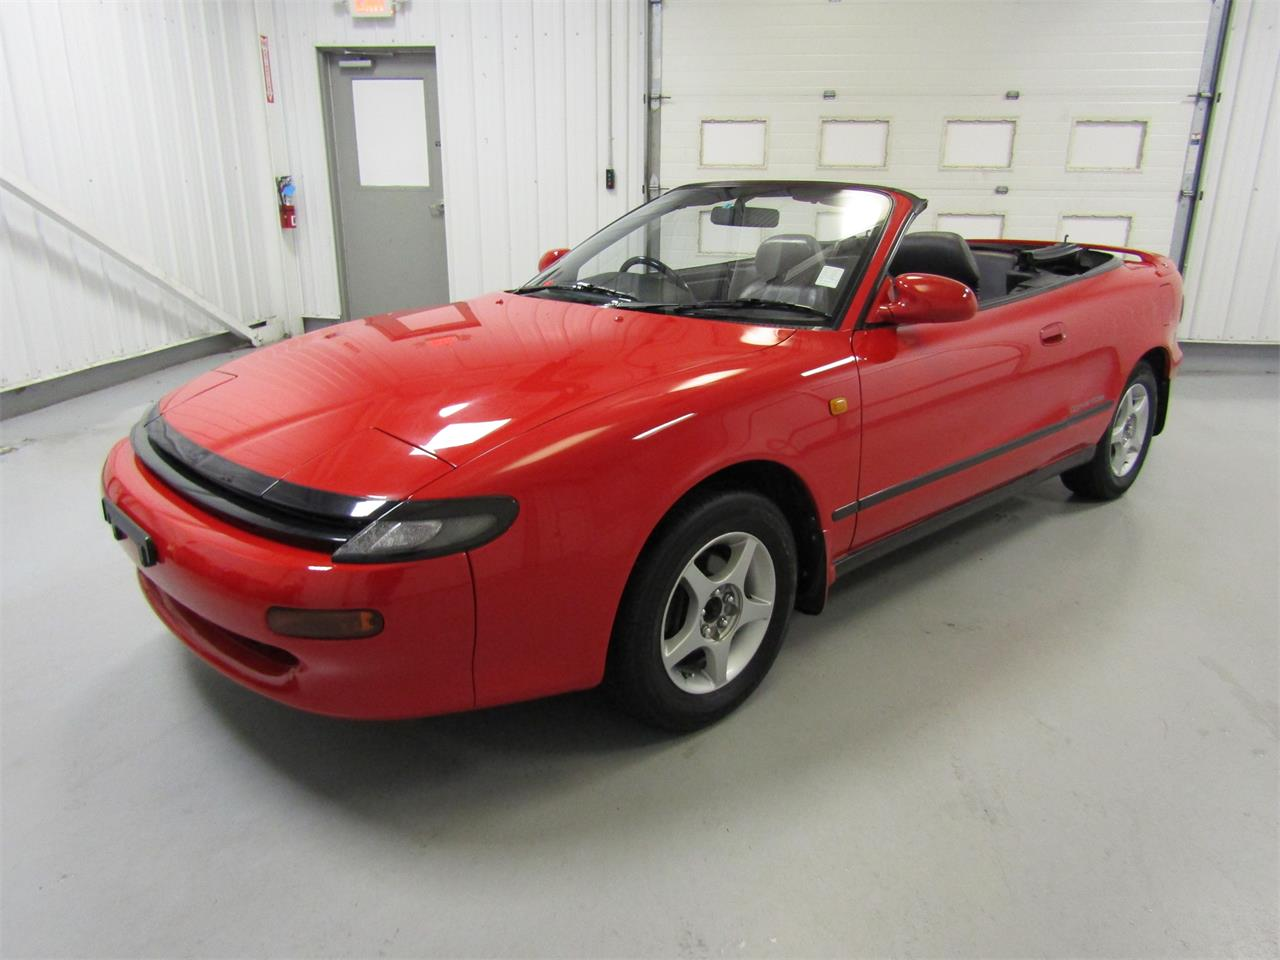 Large Picture of 1991 Toyota Celica located in Christiansburg Virginia - $9,999.00 Offered by Duncan Imports & Classic Cars - OV71